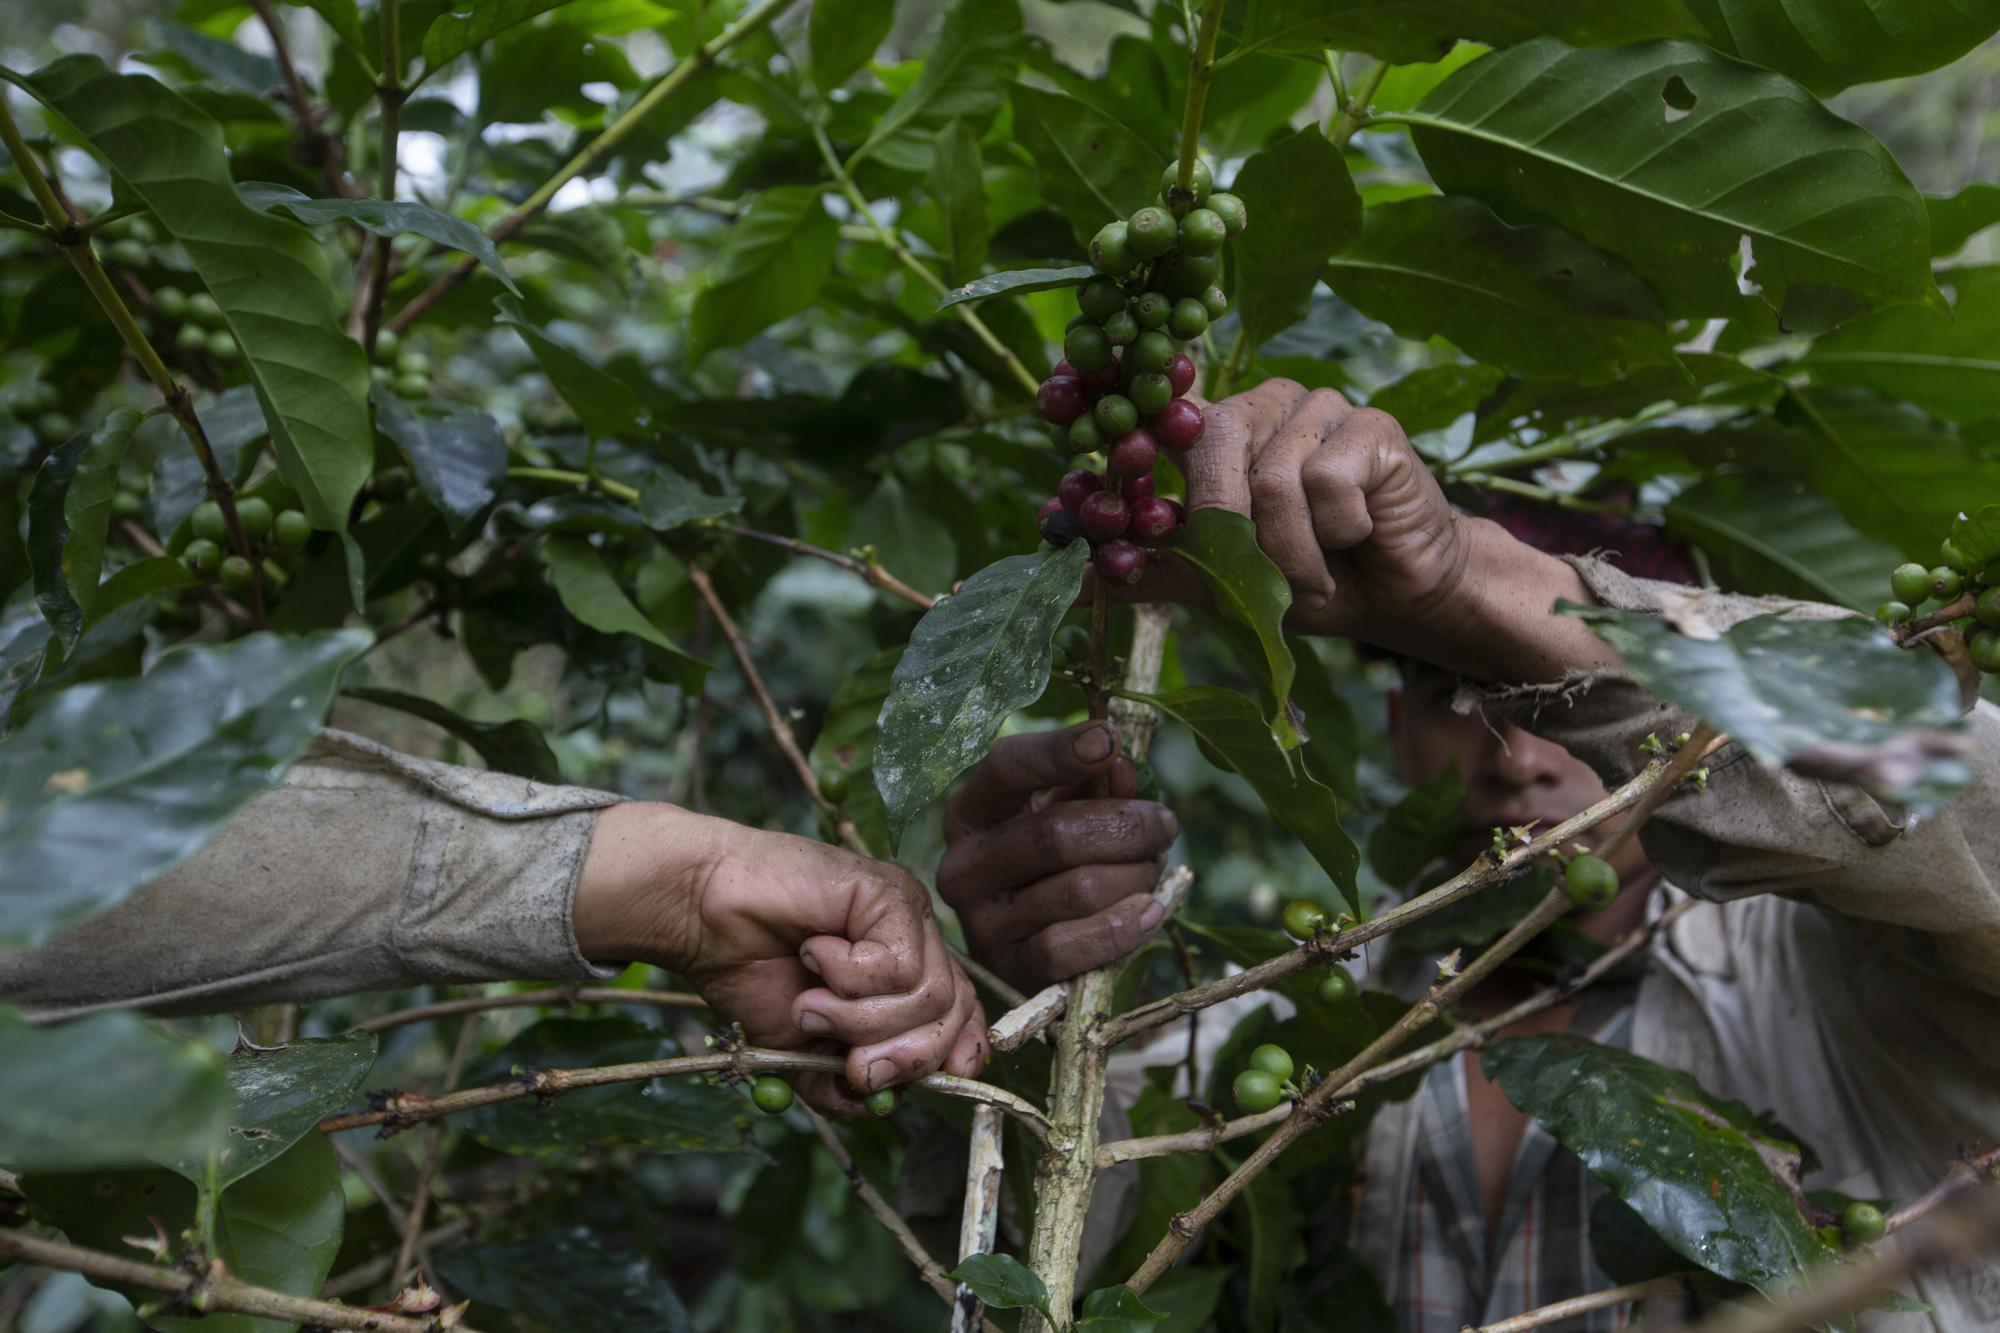 Workers pick coffee, the main source of income in the area of Tizamarte, Guatemala, Wednesday, Dec. 9, 2020. A picker makes about $8 per sack harvested and can usually fill one or two per day. (AP Photo/Moises Castillo)